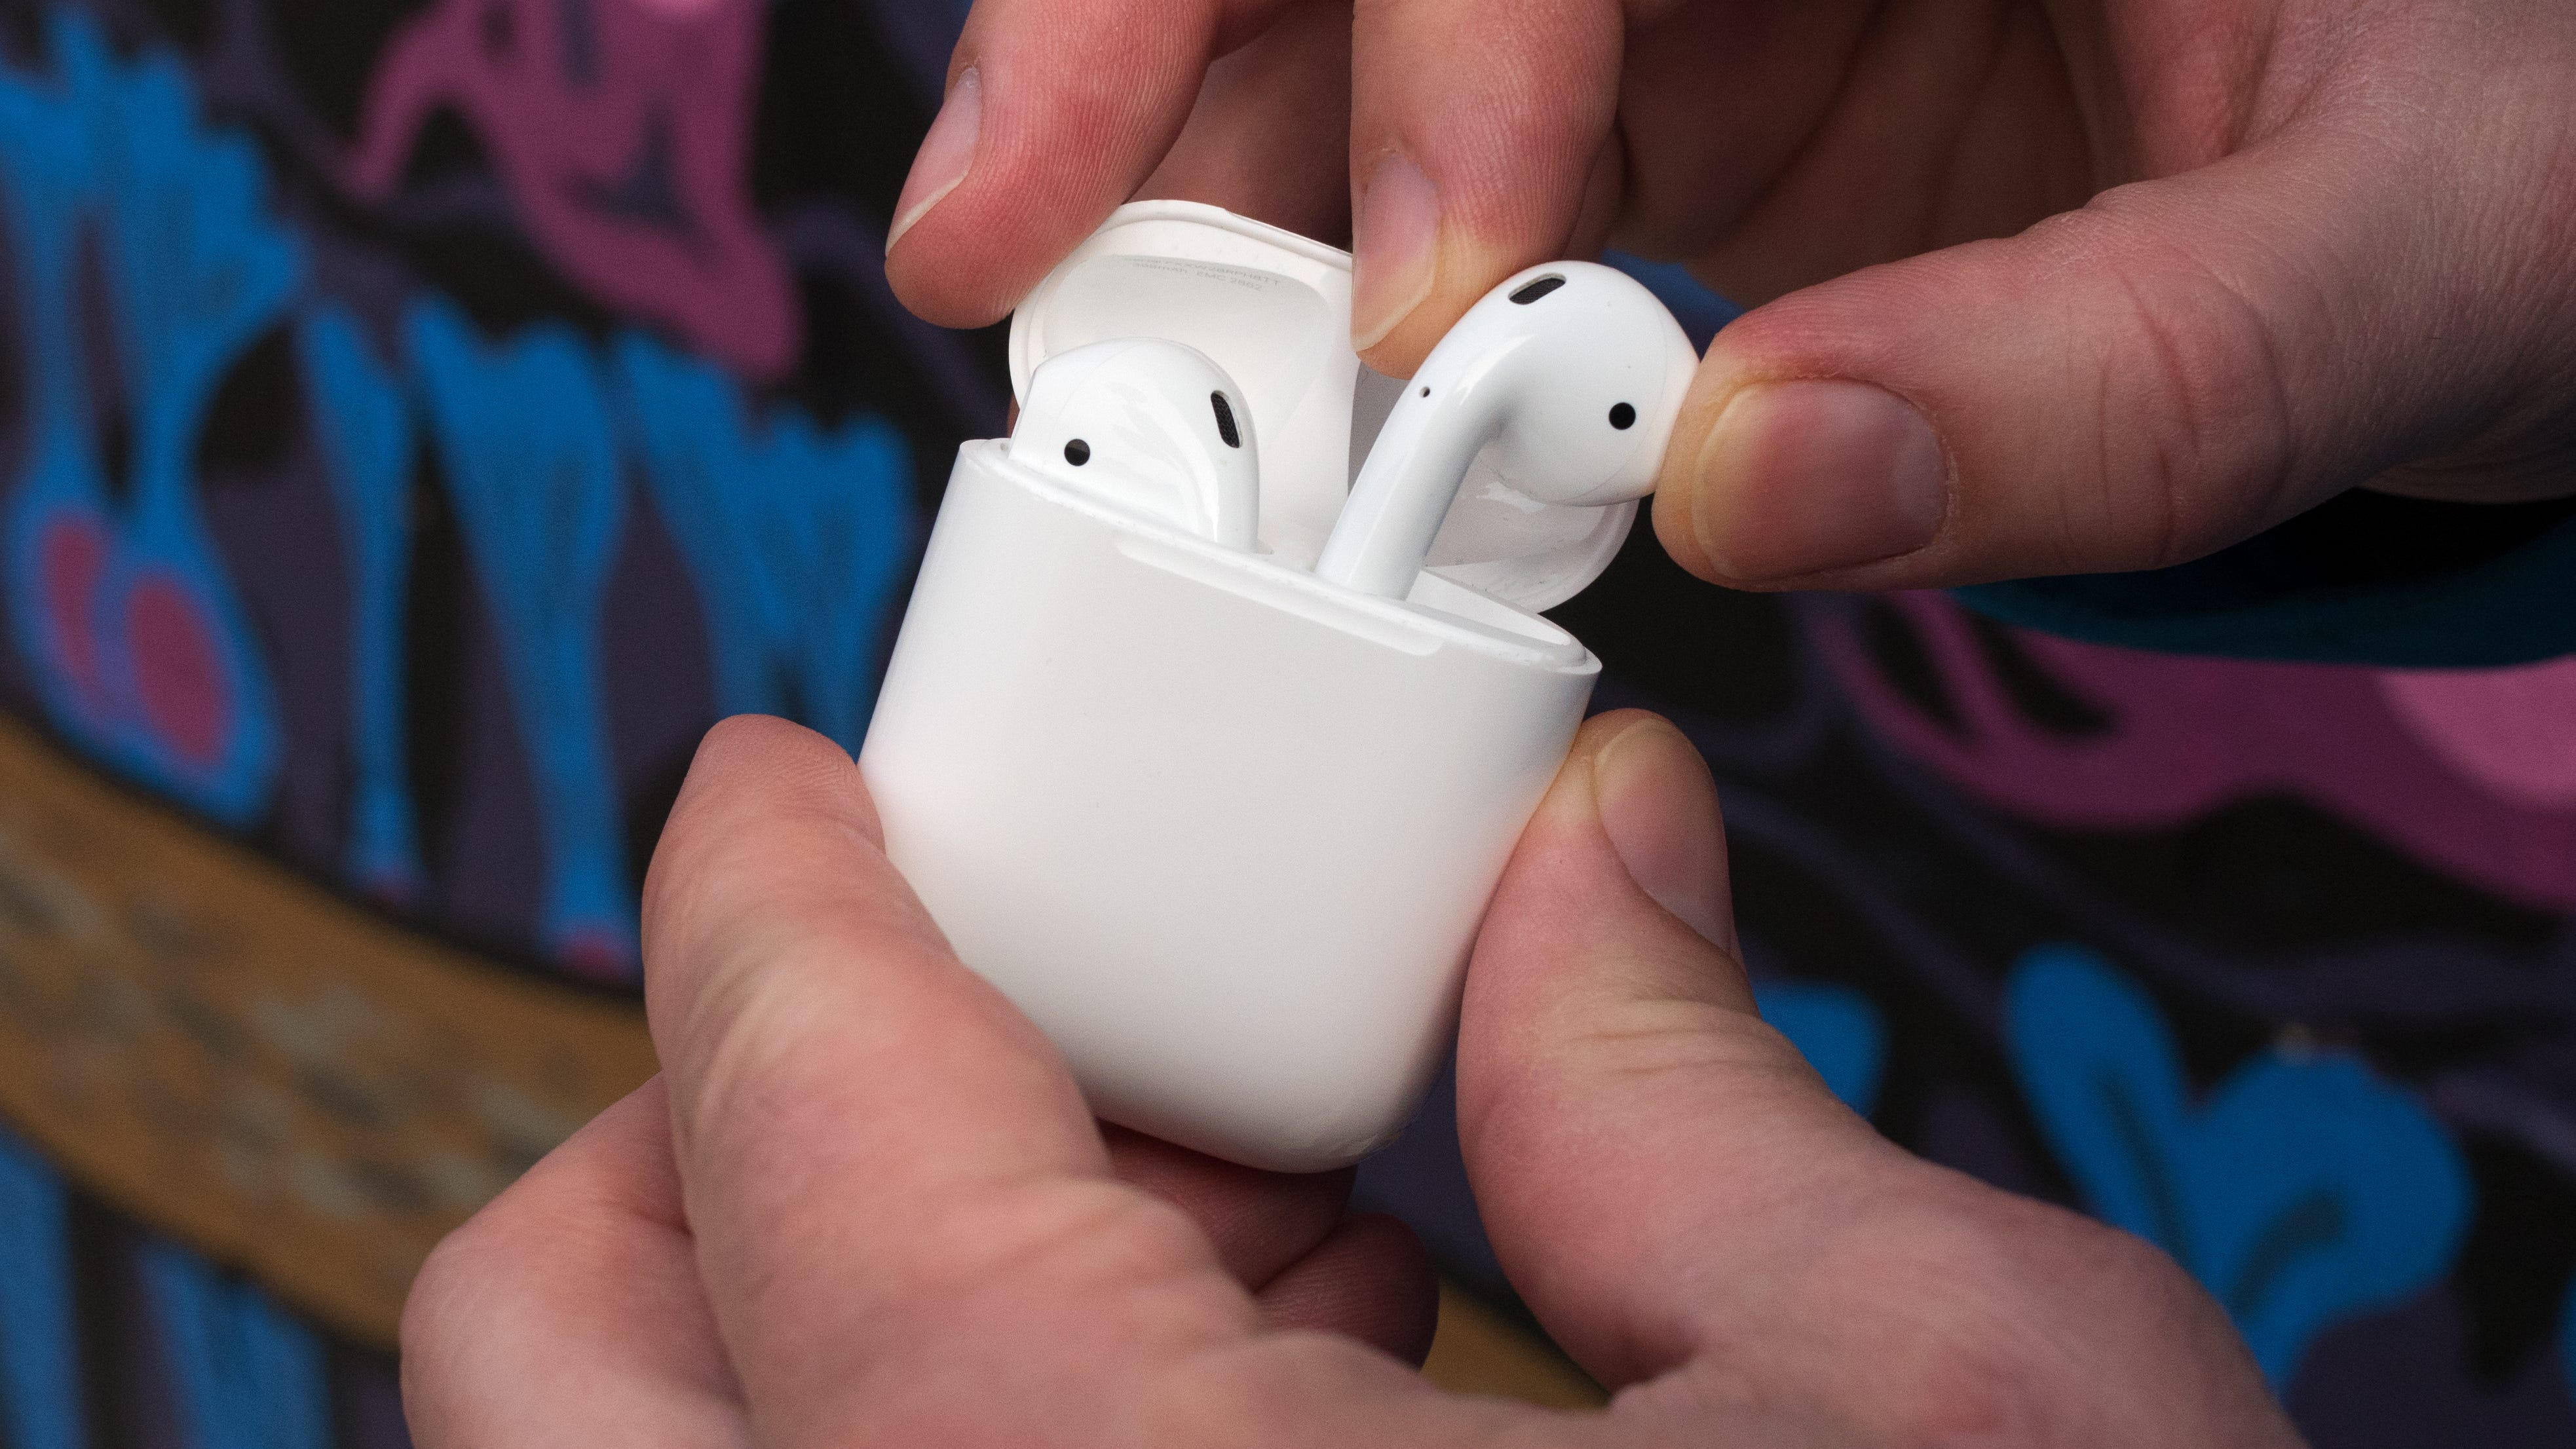 Apple earbuds case - apple earbuds real ones